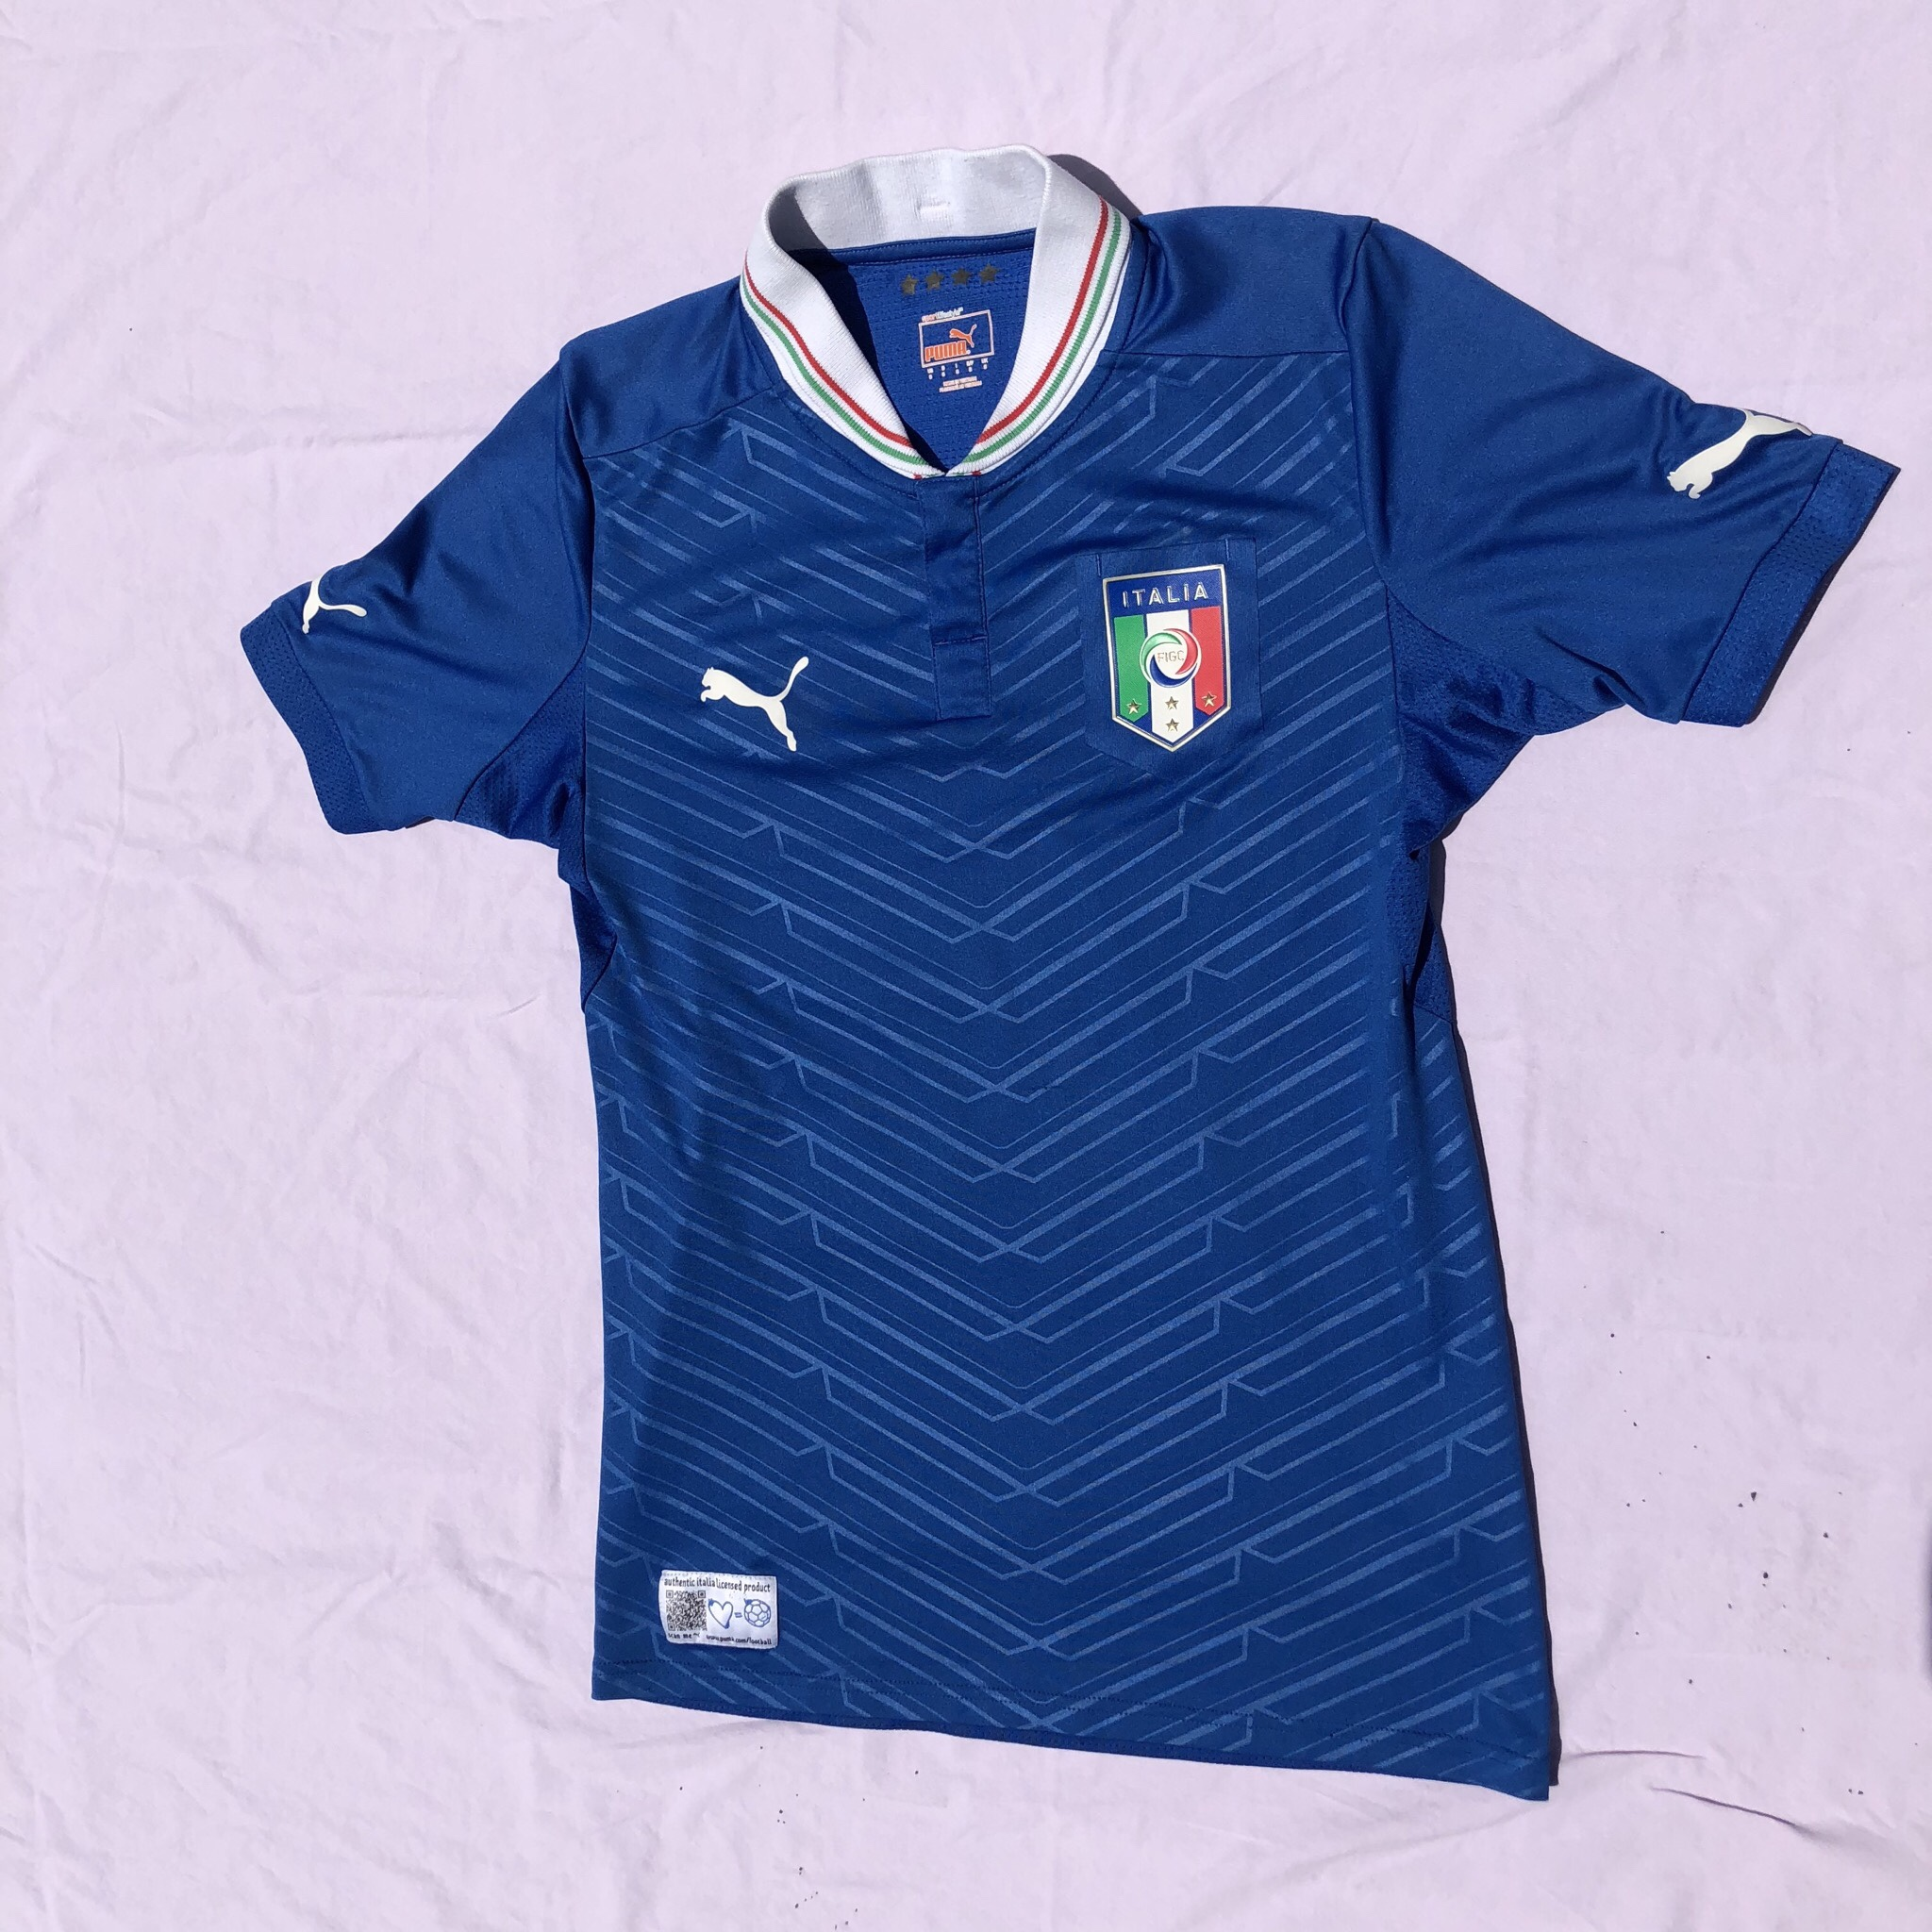 new product f3911 8240b Italy National Team Soccer Jersey from 2014. Puma... - Depop